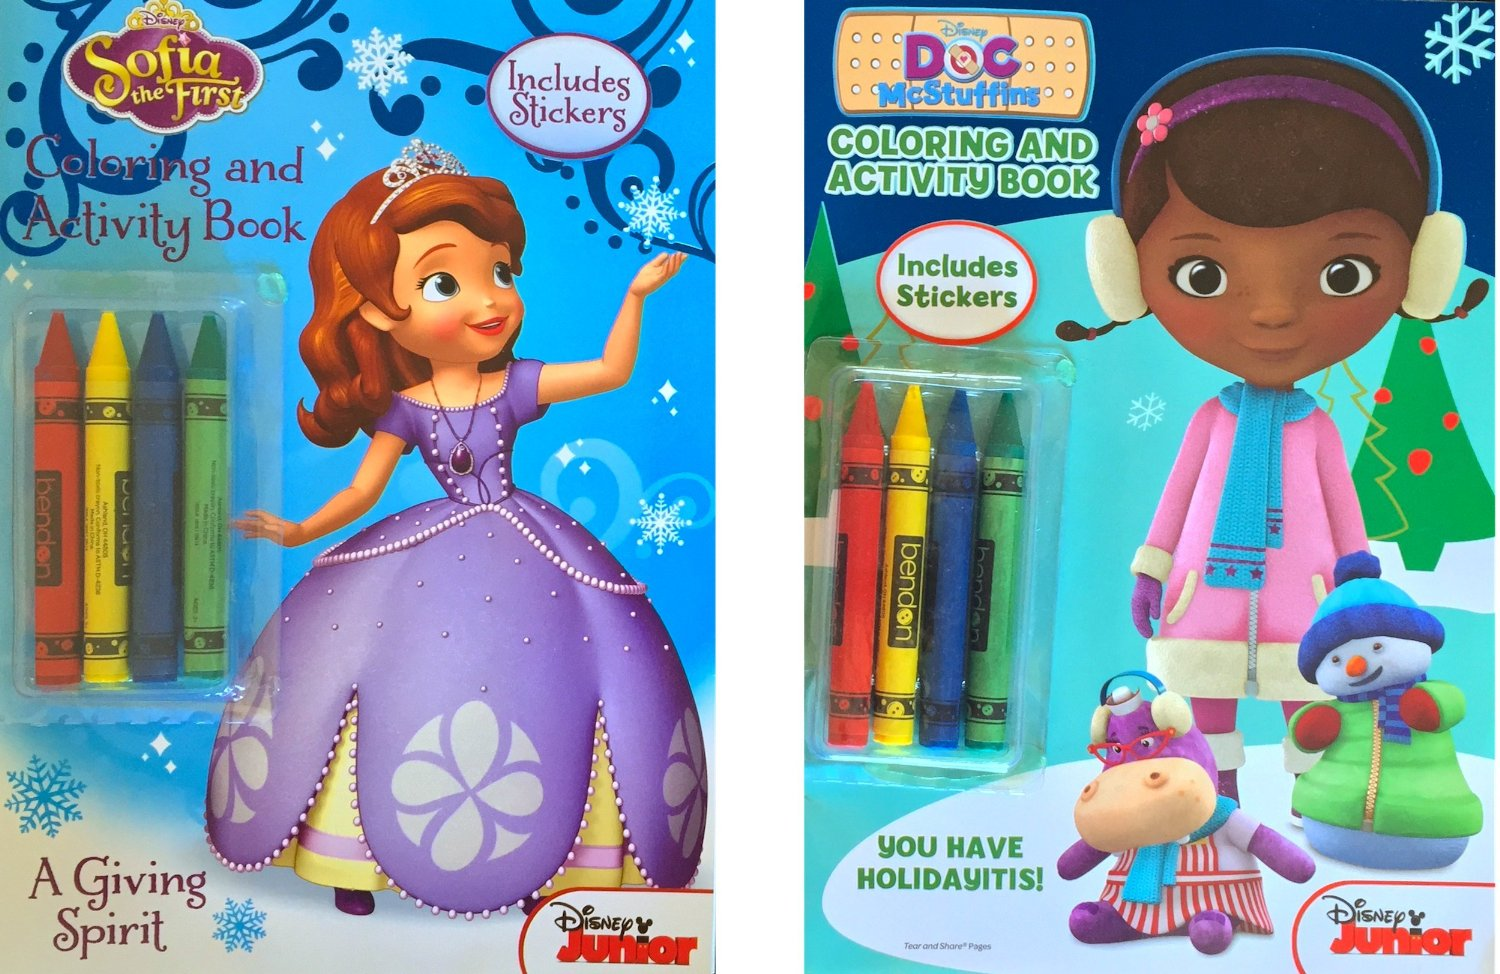 Christmas Children's Coloring Book Gift Set Includes Sofia the First Coloring and Activity Book with 2 Sticker Sheets Inside, Doc Mc Stuffins Coloring and Activity Book with 2 Sticker Sheets